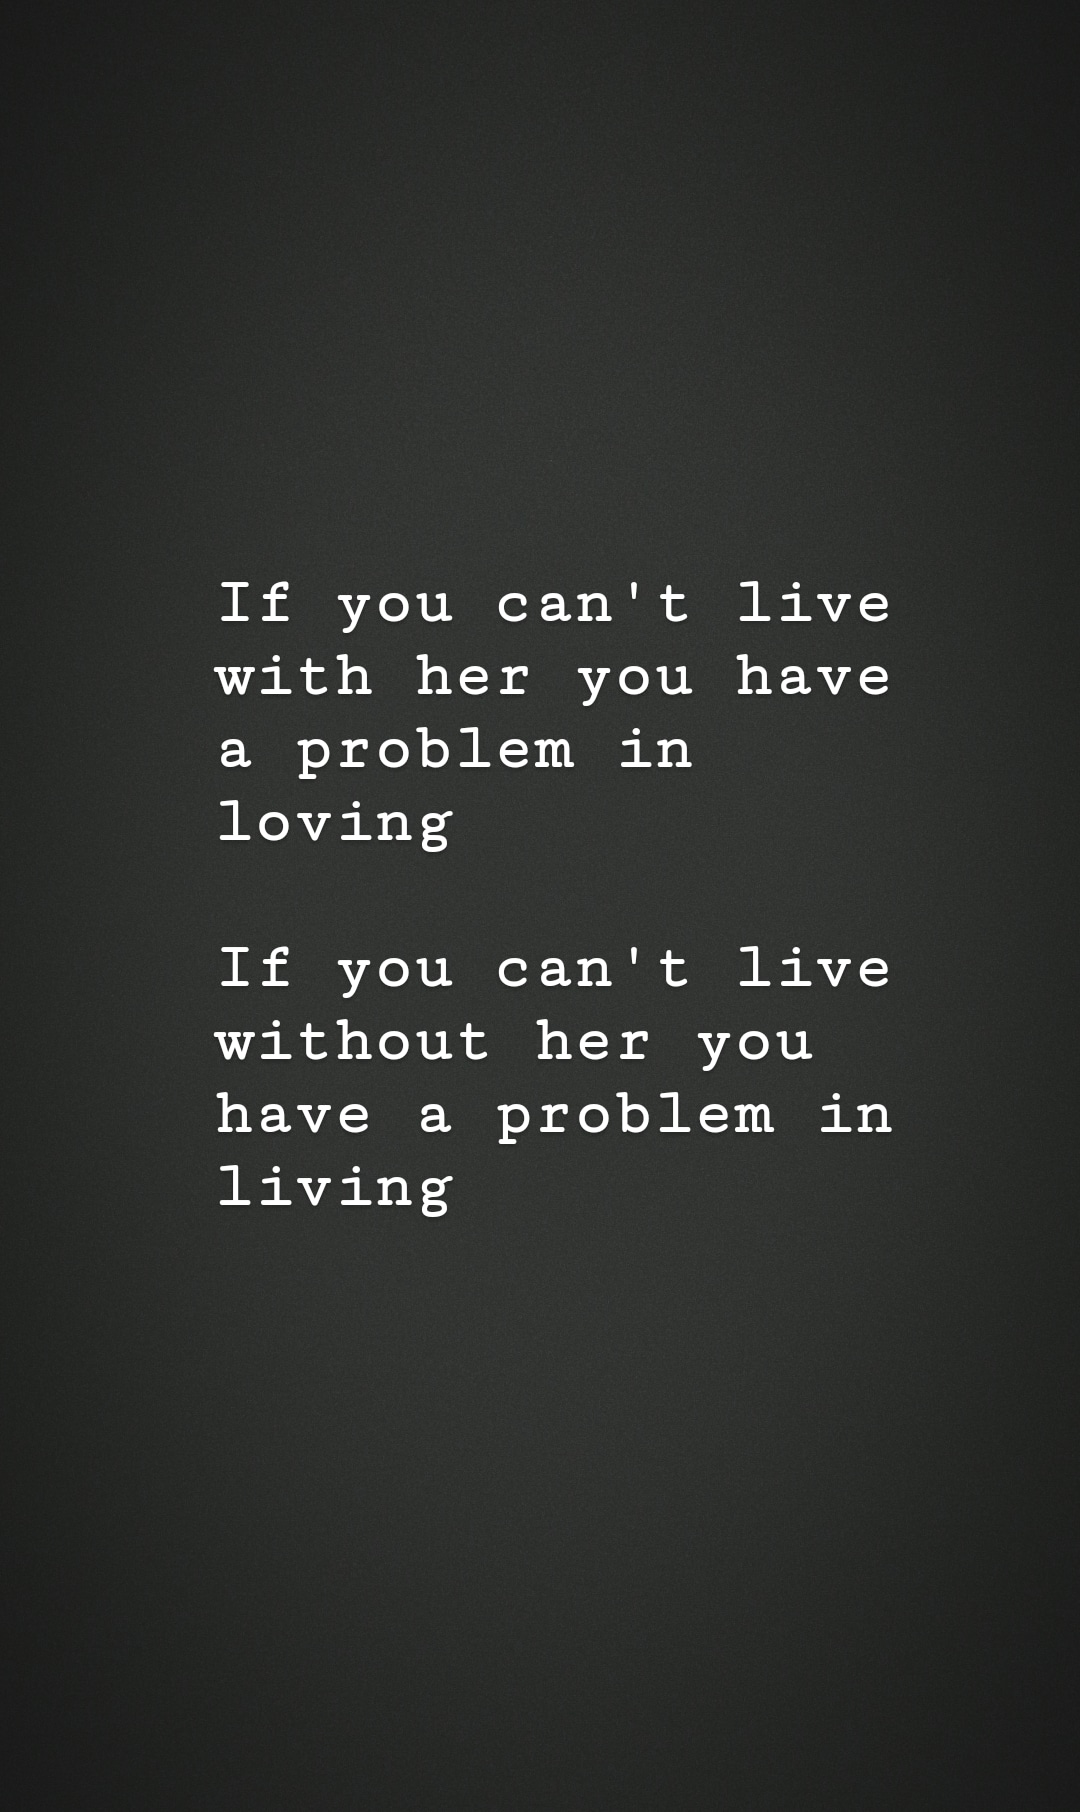 If you can't live without her – Weirdo_Guy (1080×1812) [OC]